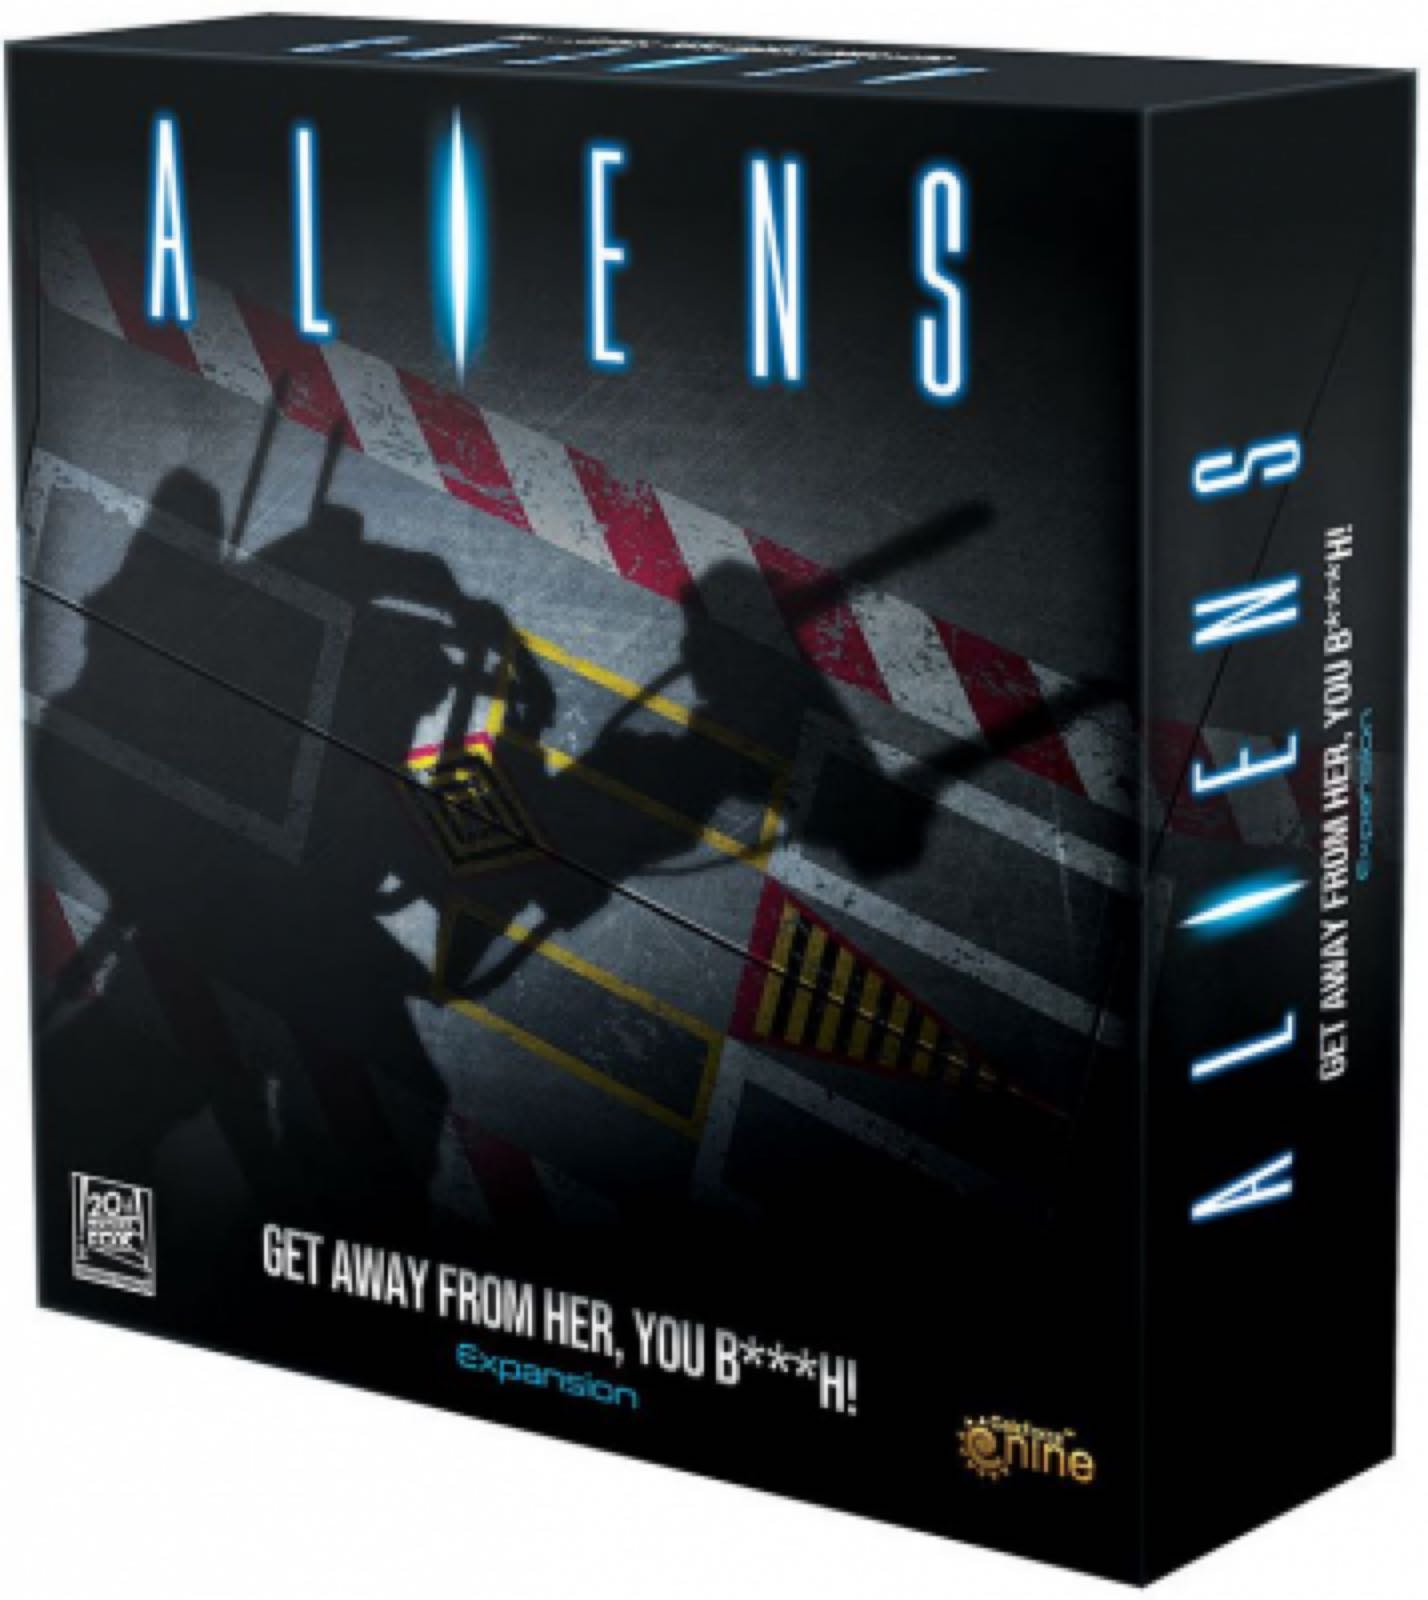 ALIENS: Get away from her you b***h!